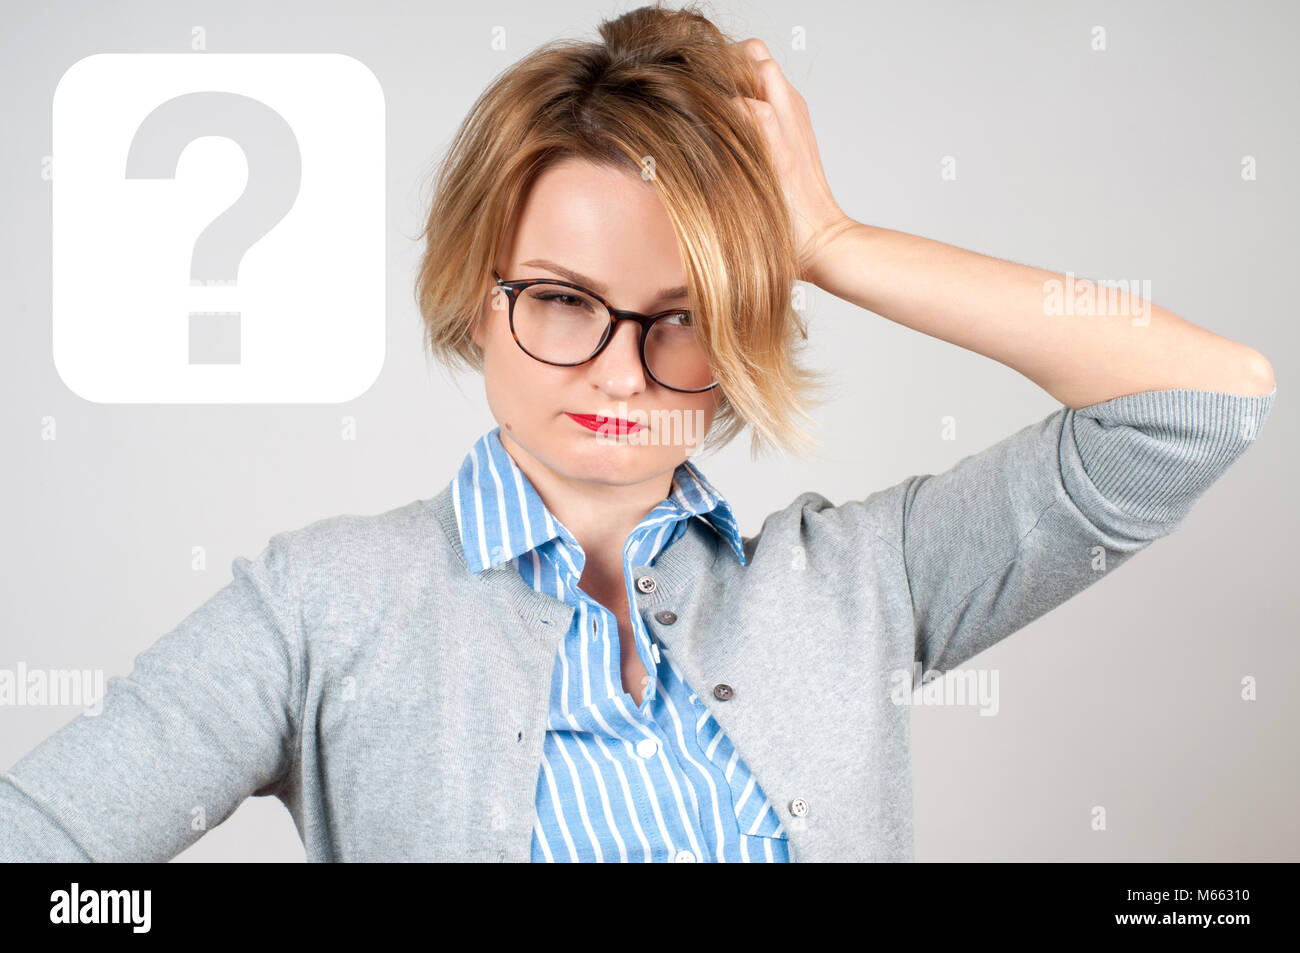 Thinking woman with questioning expression and question mark. Brainstorm. Idea concept - Stock Image